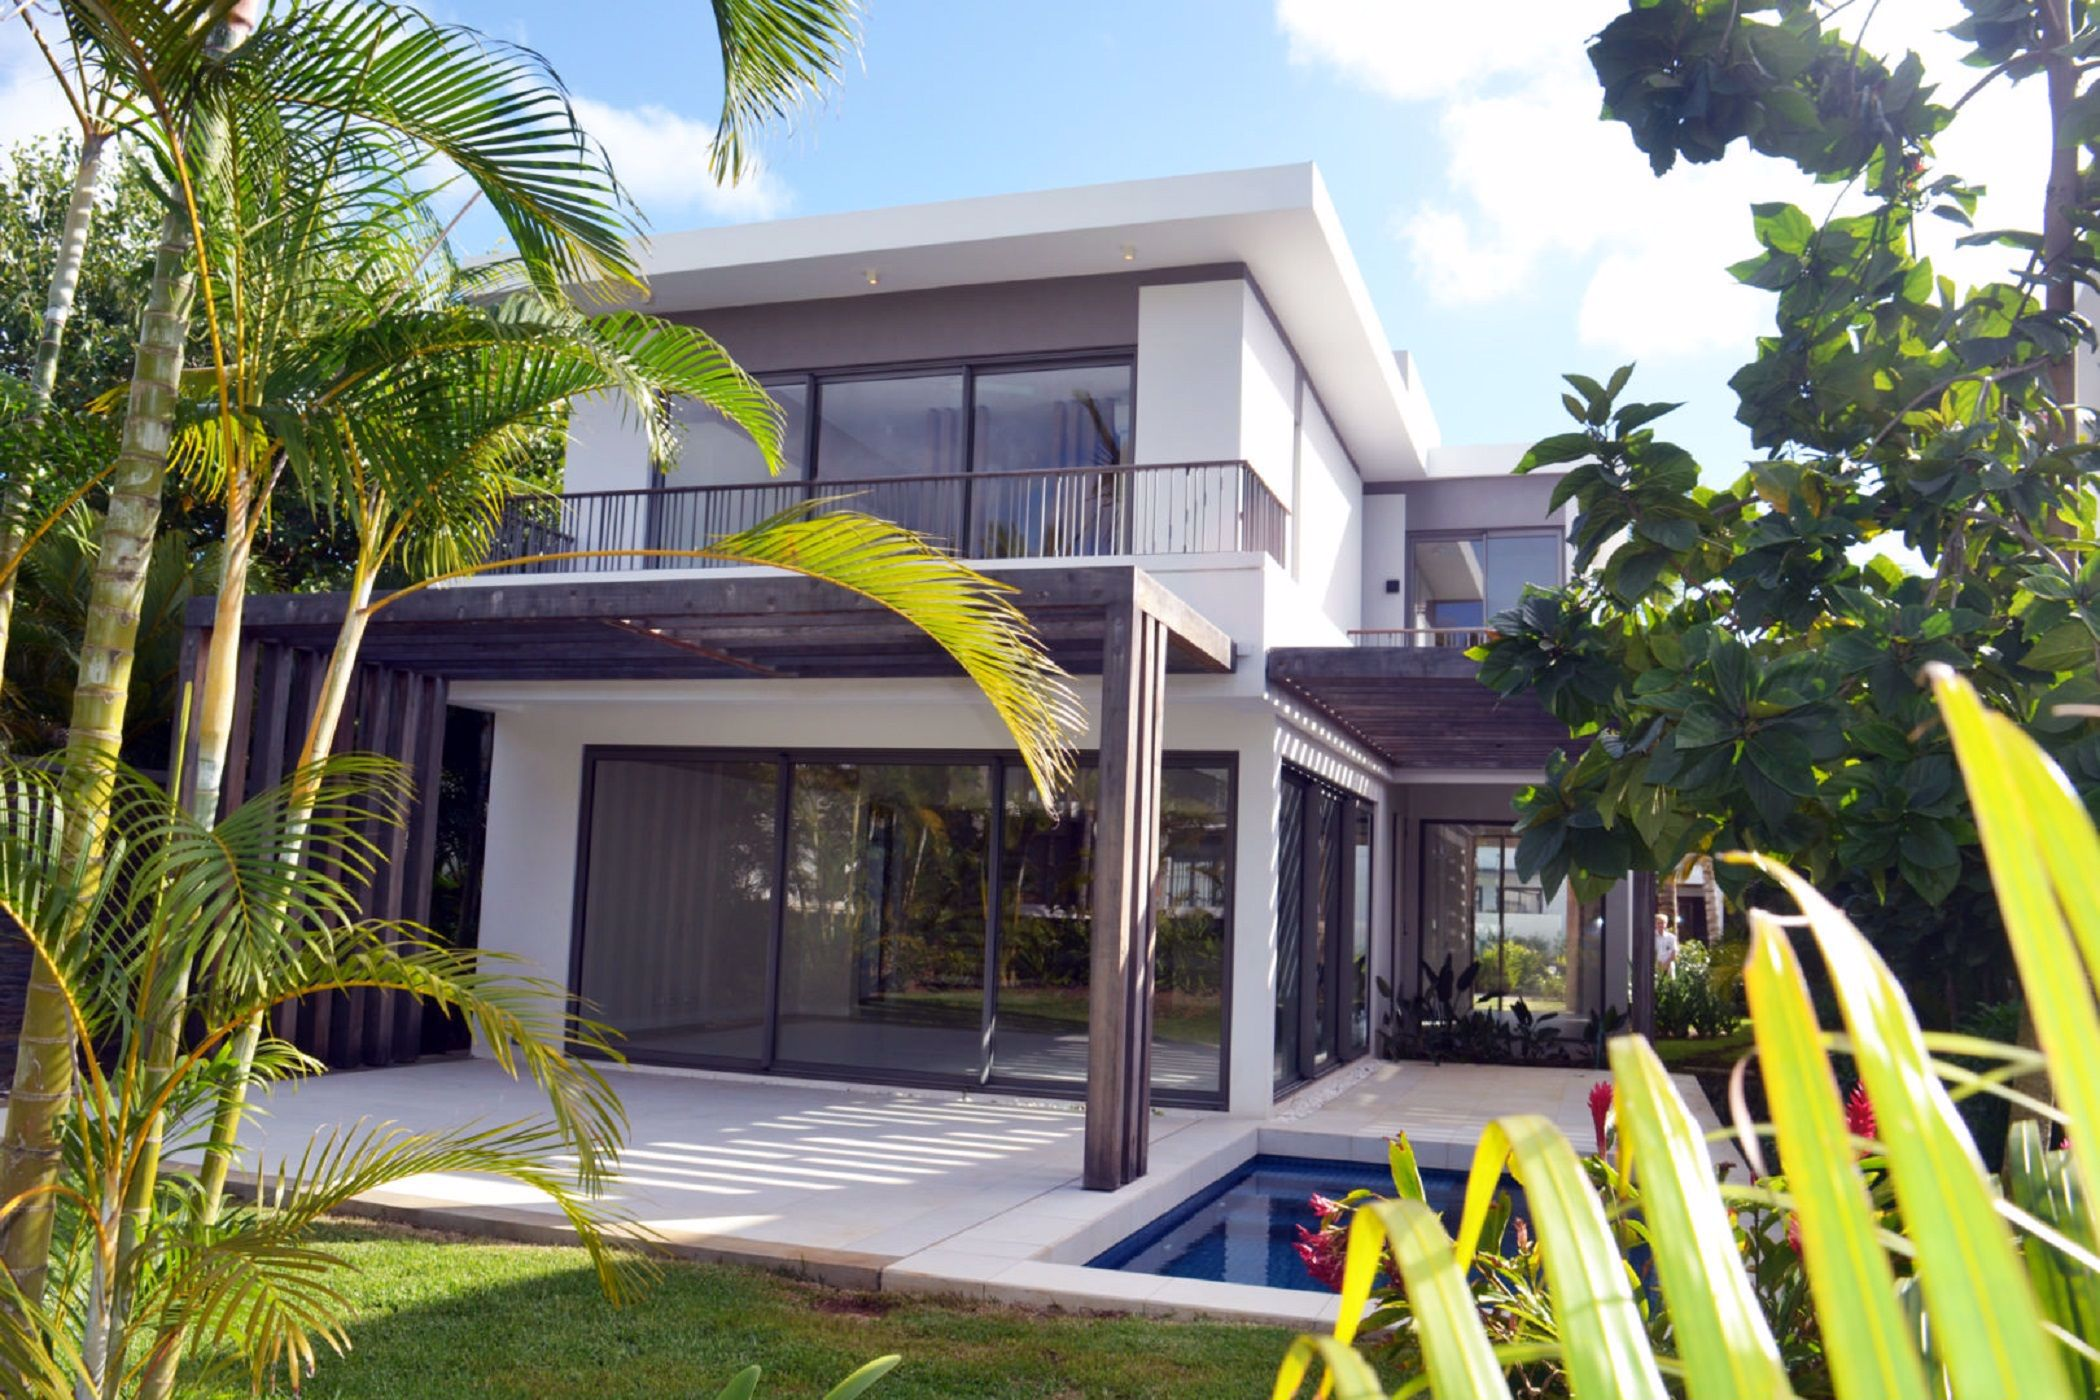 4 bedroom house to rent in Mont Choisy Le Parc (Mauritius)